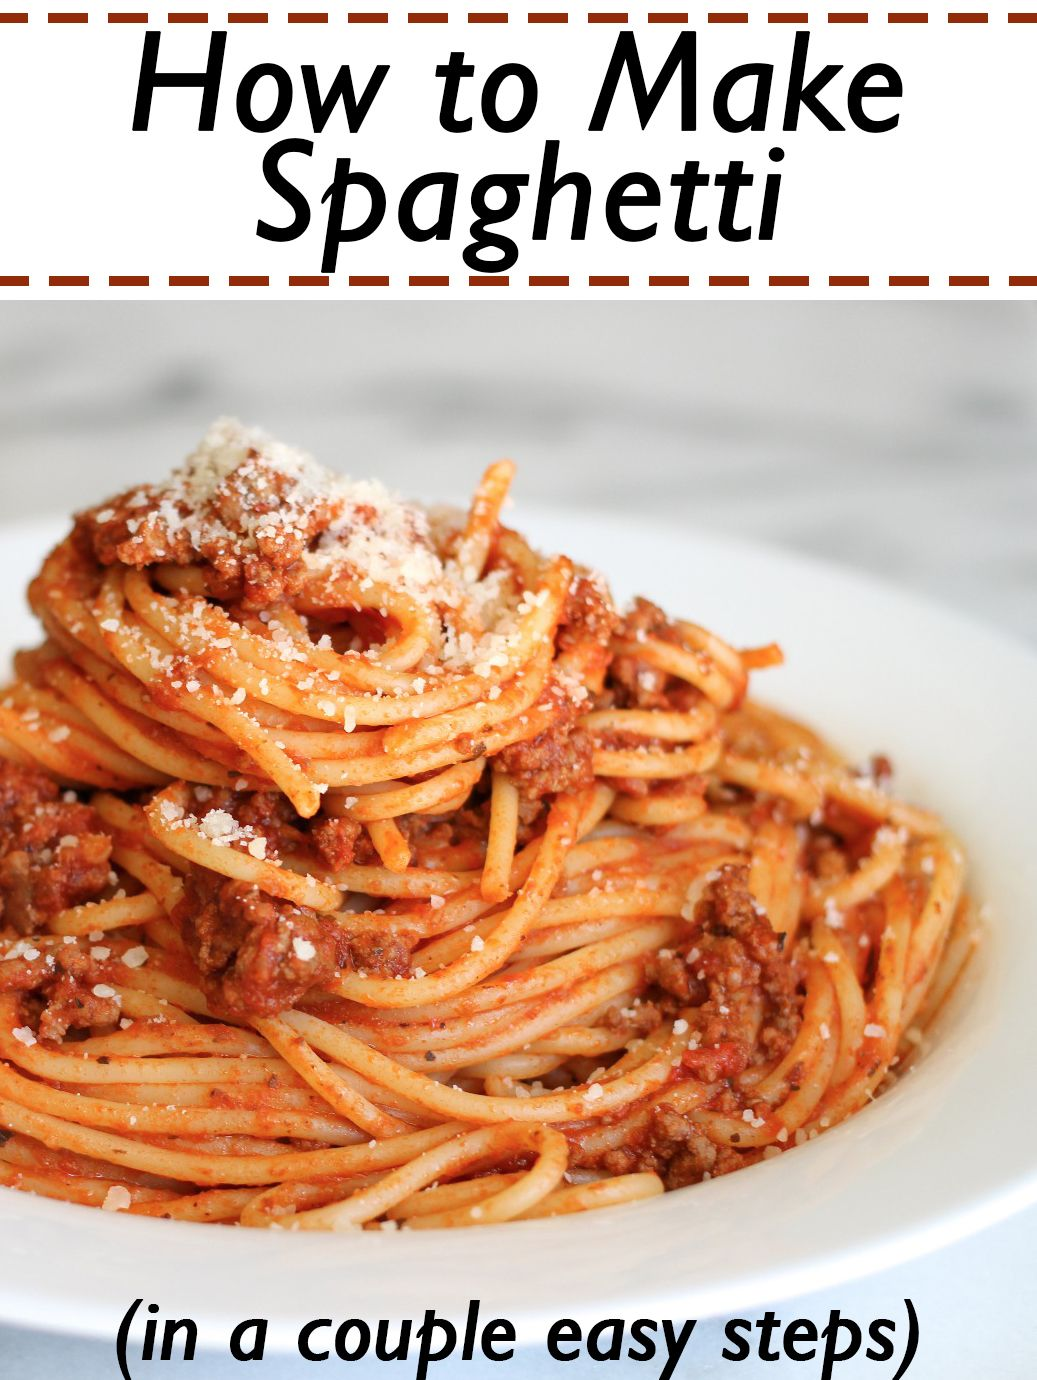 How To Make Spaghetti In A Couple Easy Steps Spaghetti Recipes Easy Best Spaghetti Recipe Easy Spagetti Recipes